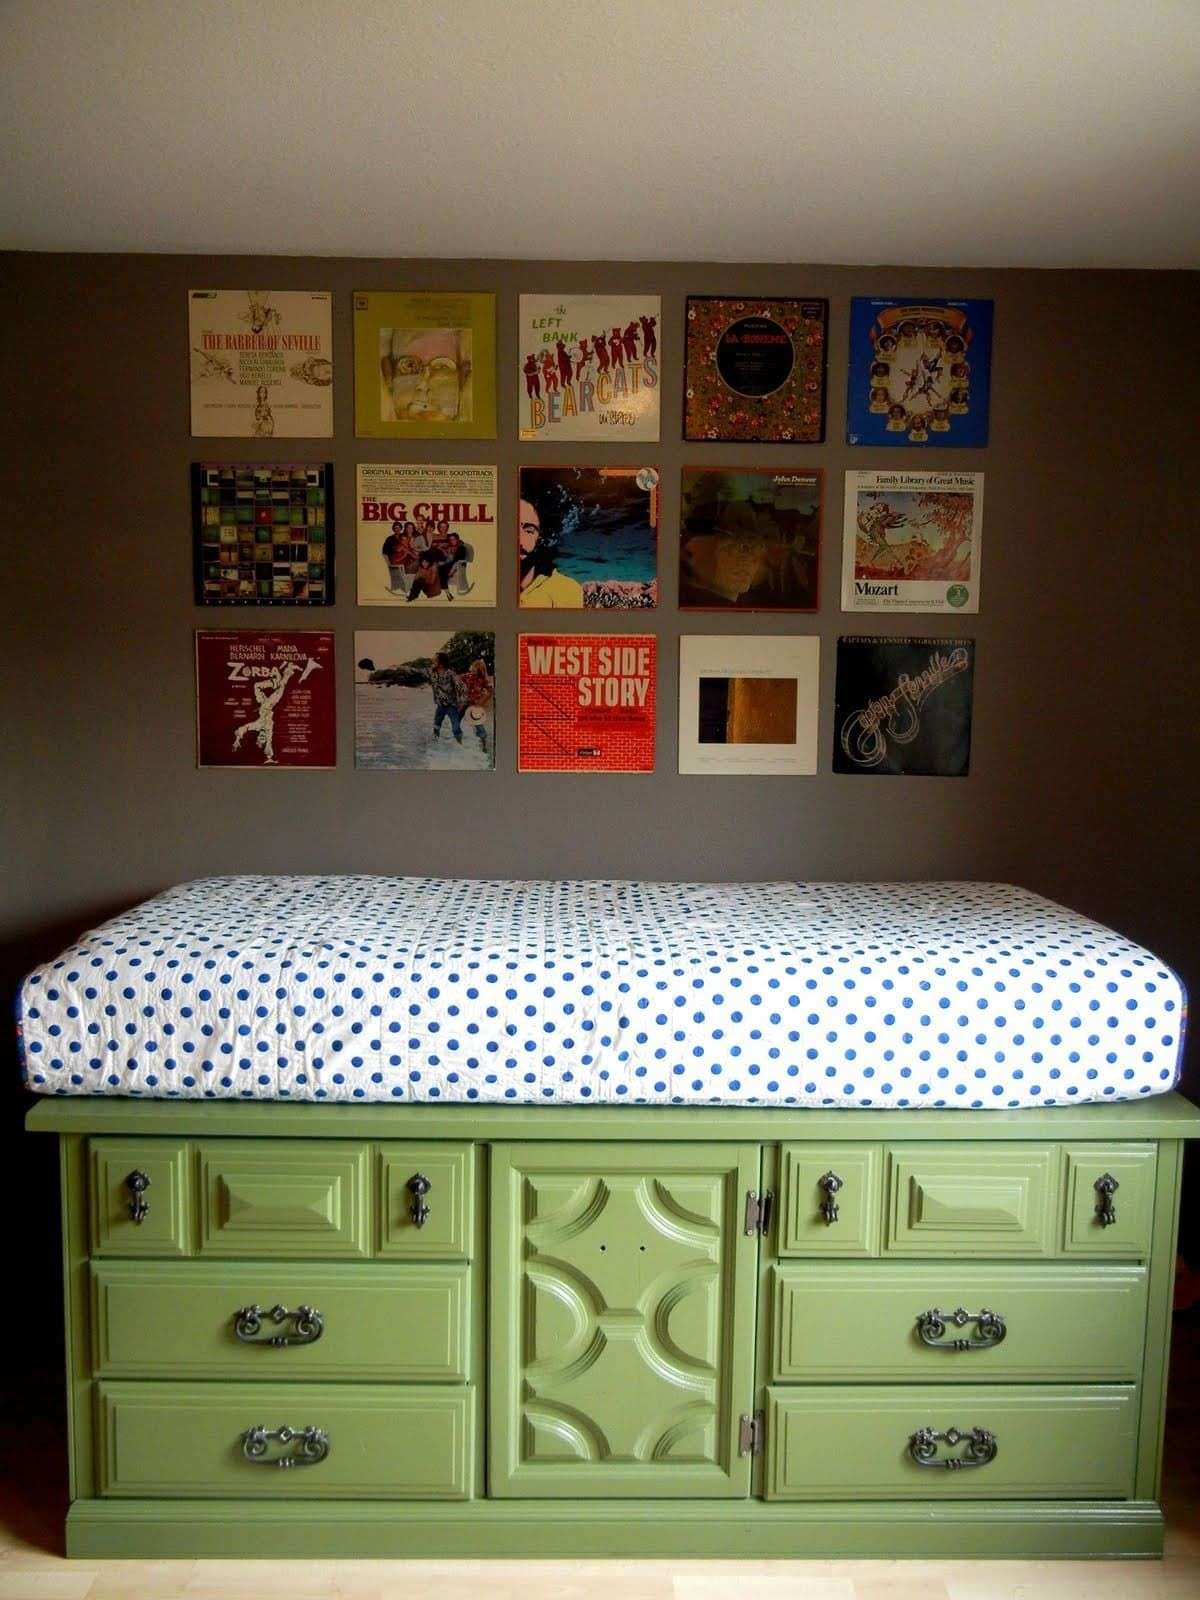 Gentil Not Your Momu0027s Underbed Storage: 10 Creative Ways To Make More Space In Your  Bedroom